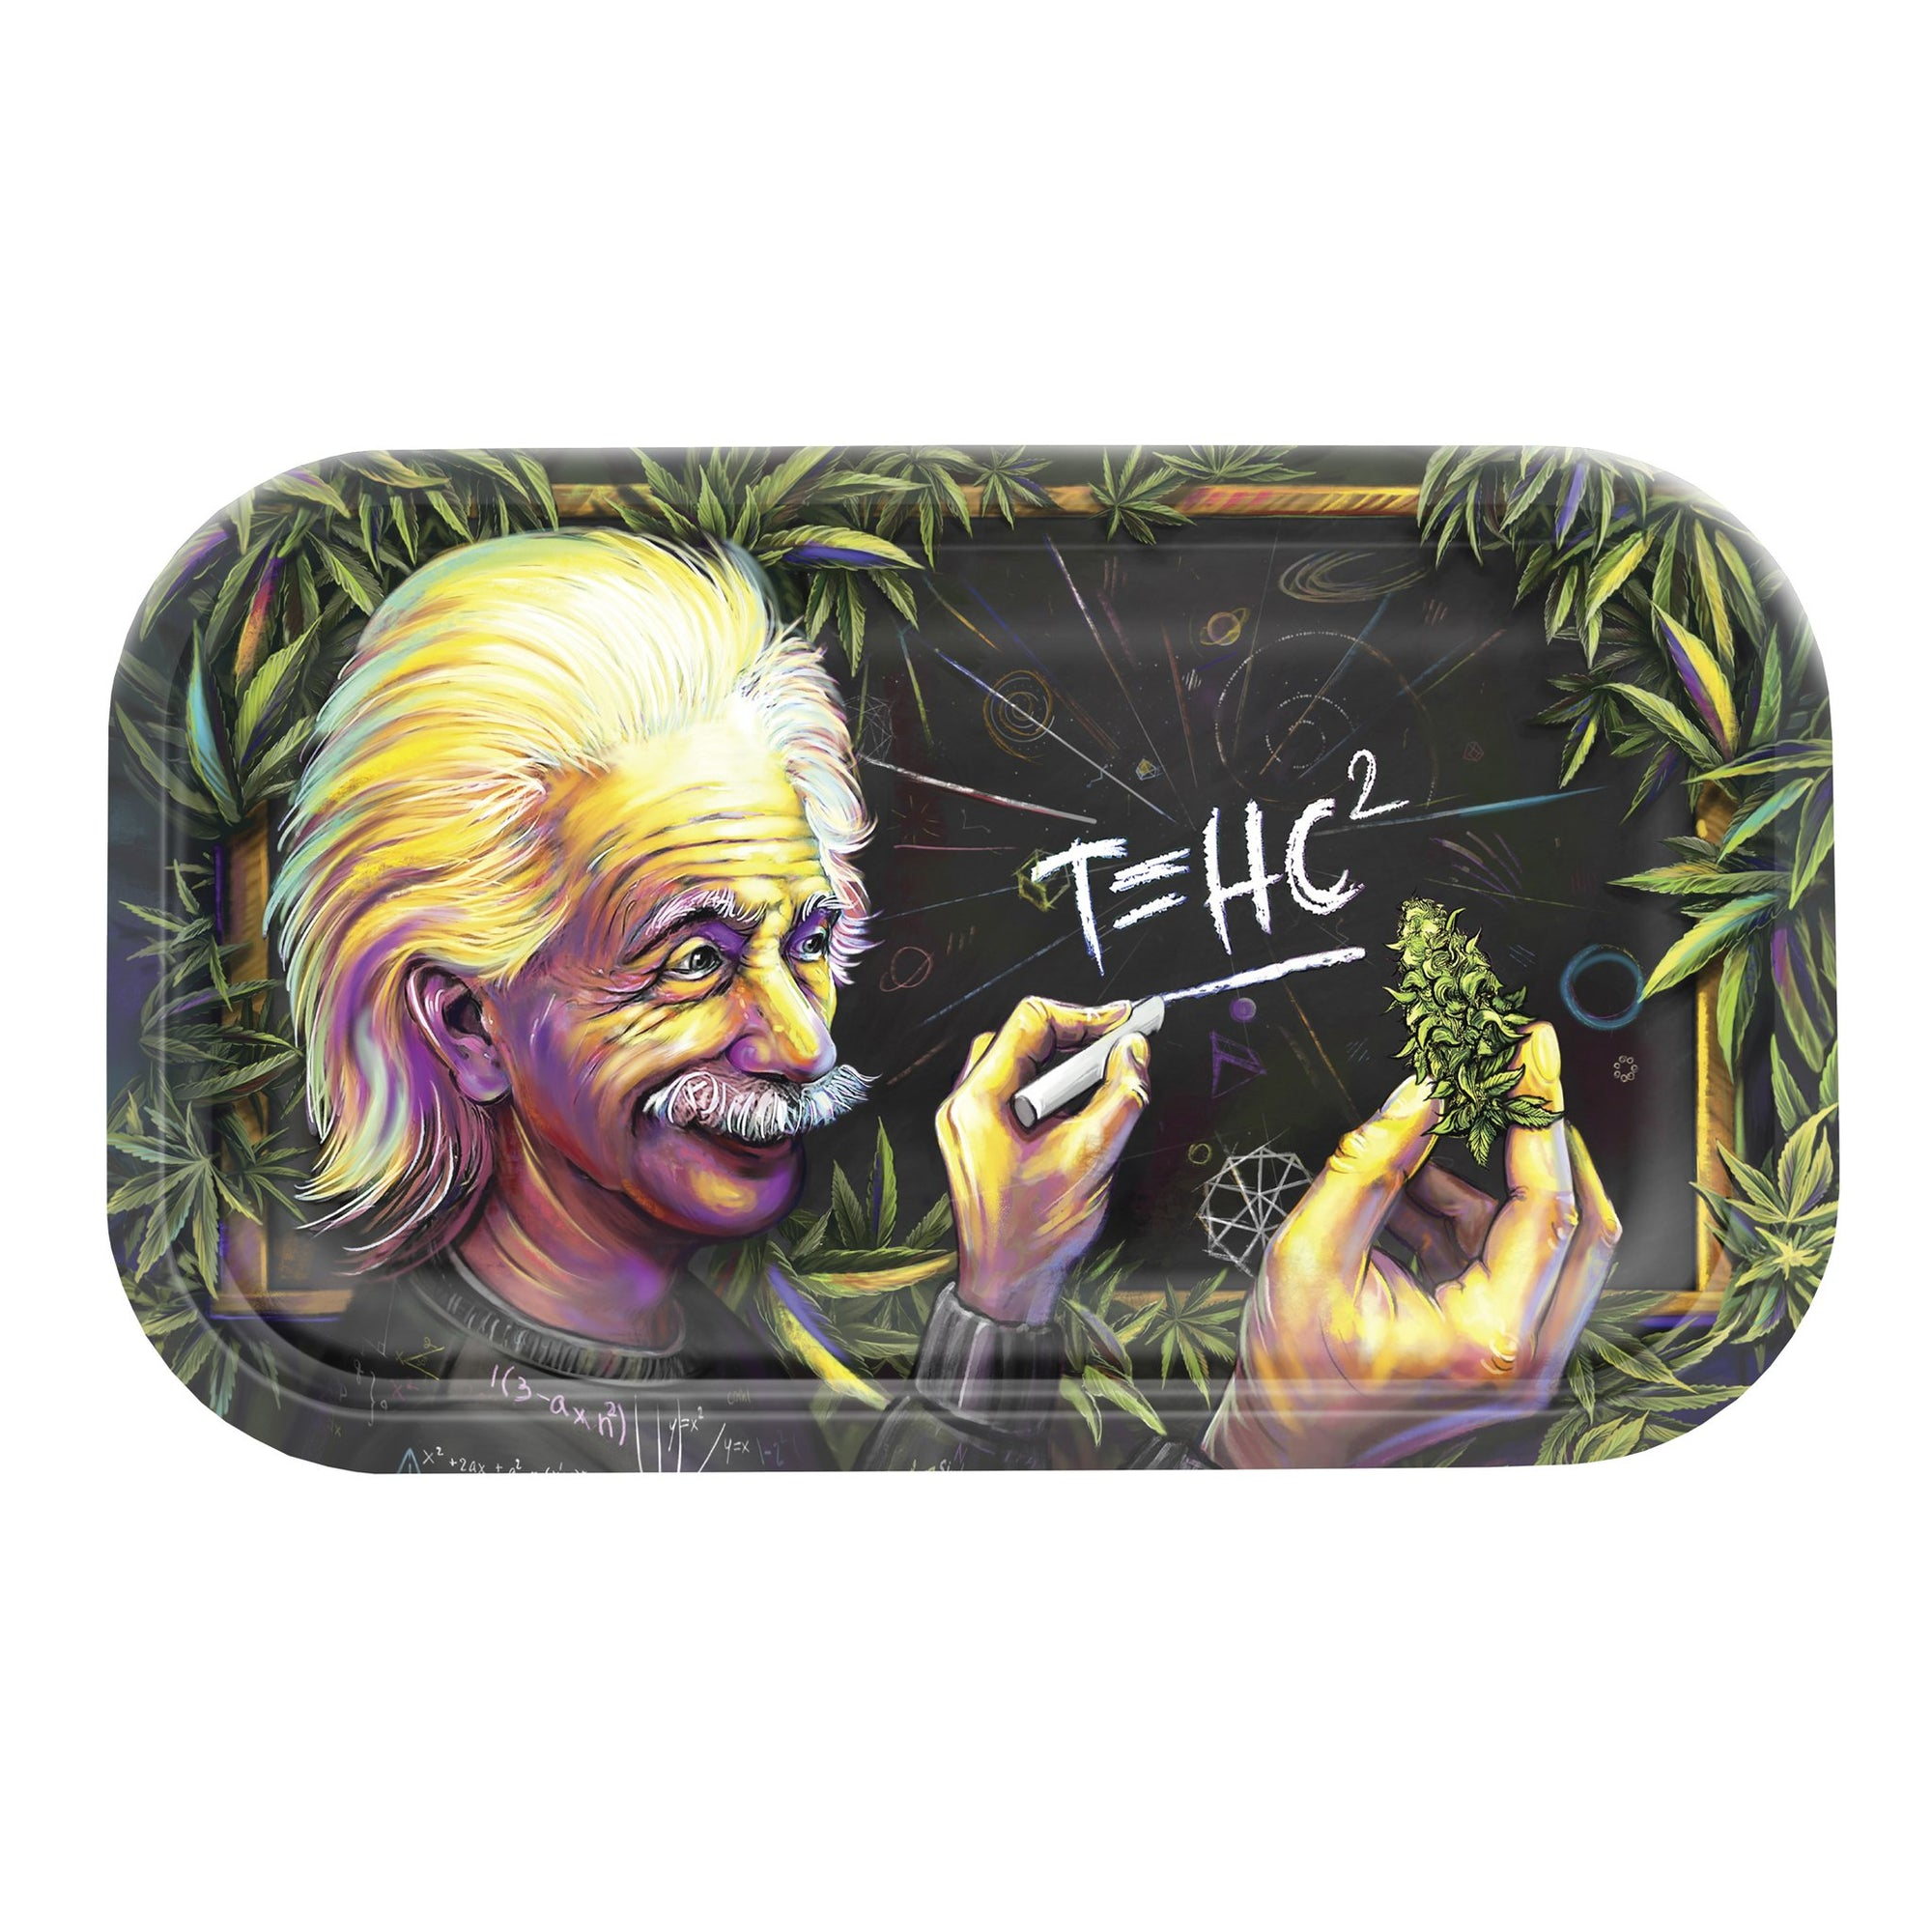 V Syndicate 11 inch metal rolling tray Einstein staring on pot he holds writes T=HC2 chalk blackboard weed leaves on sides